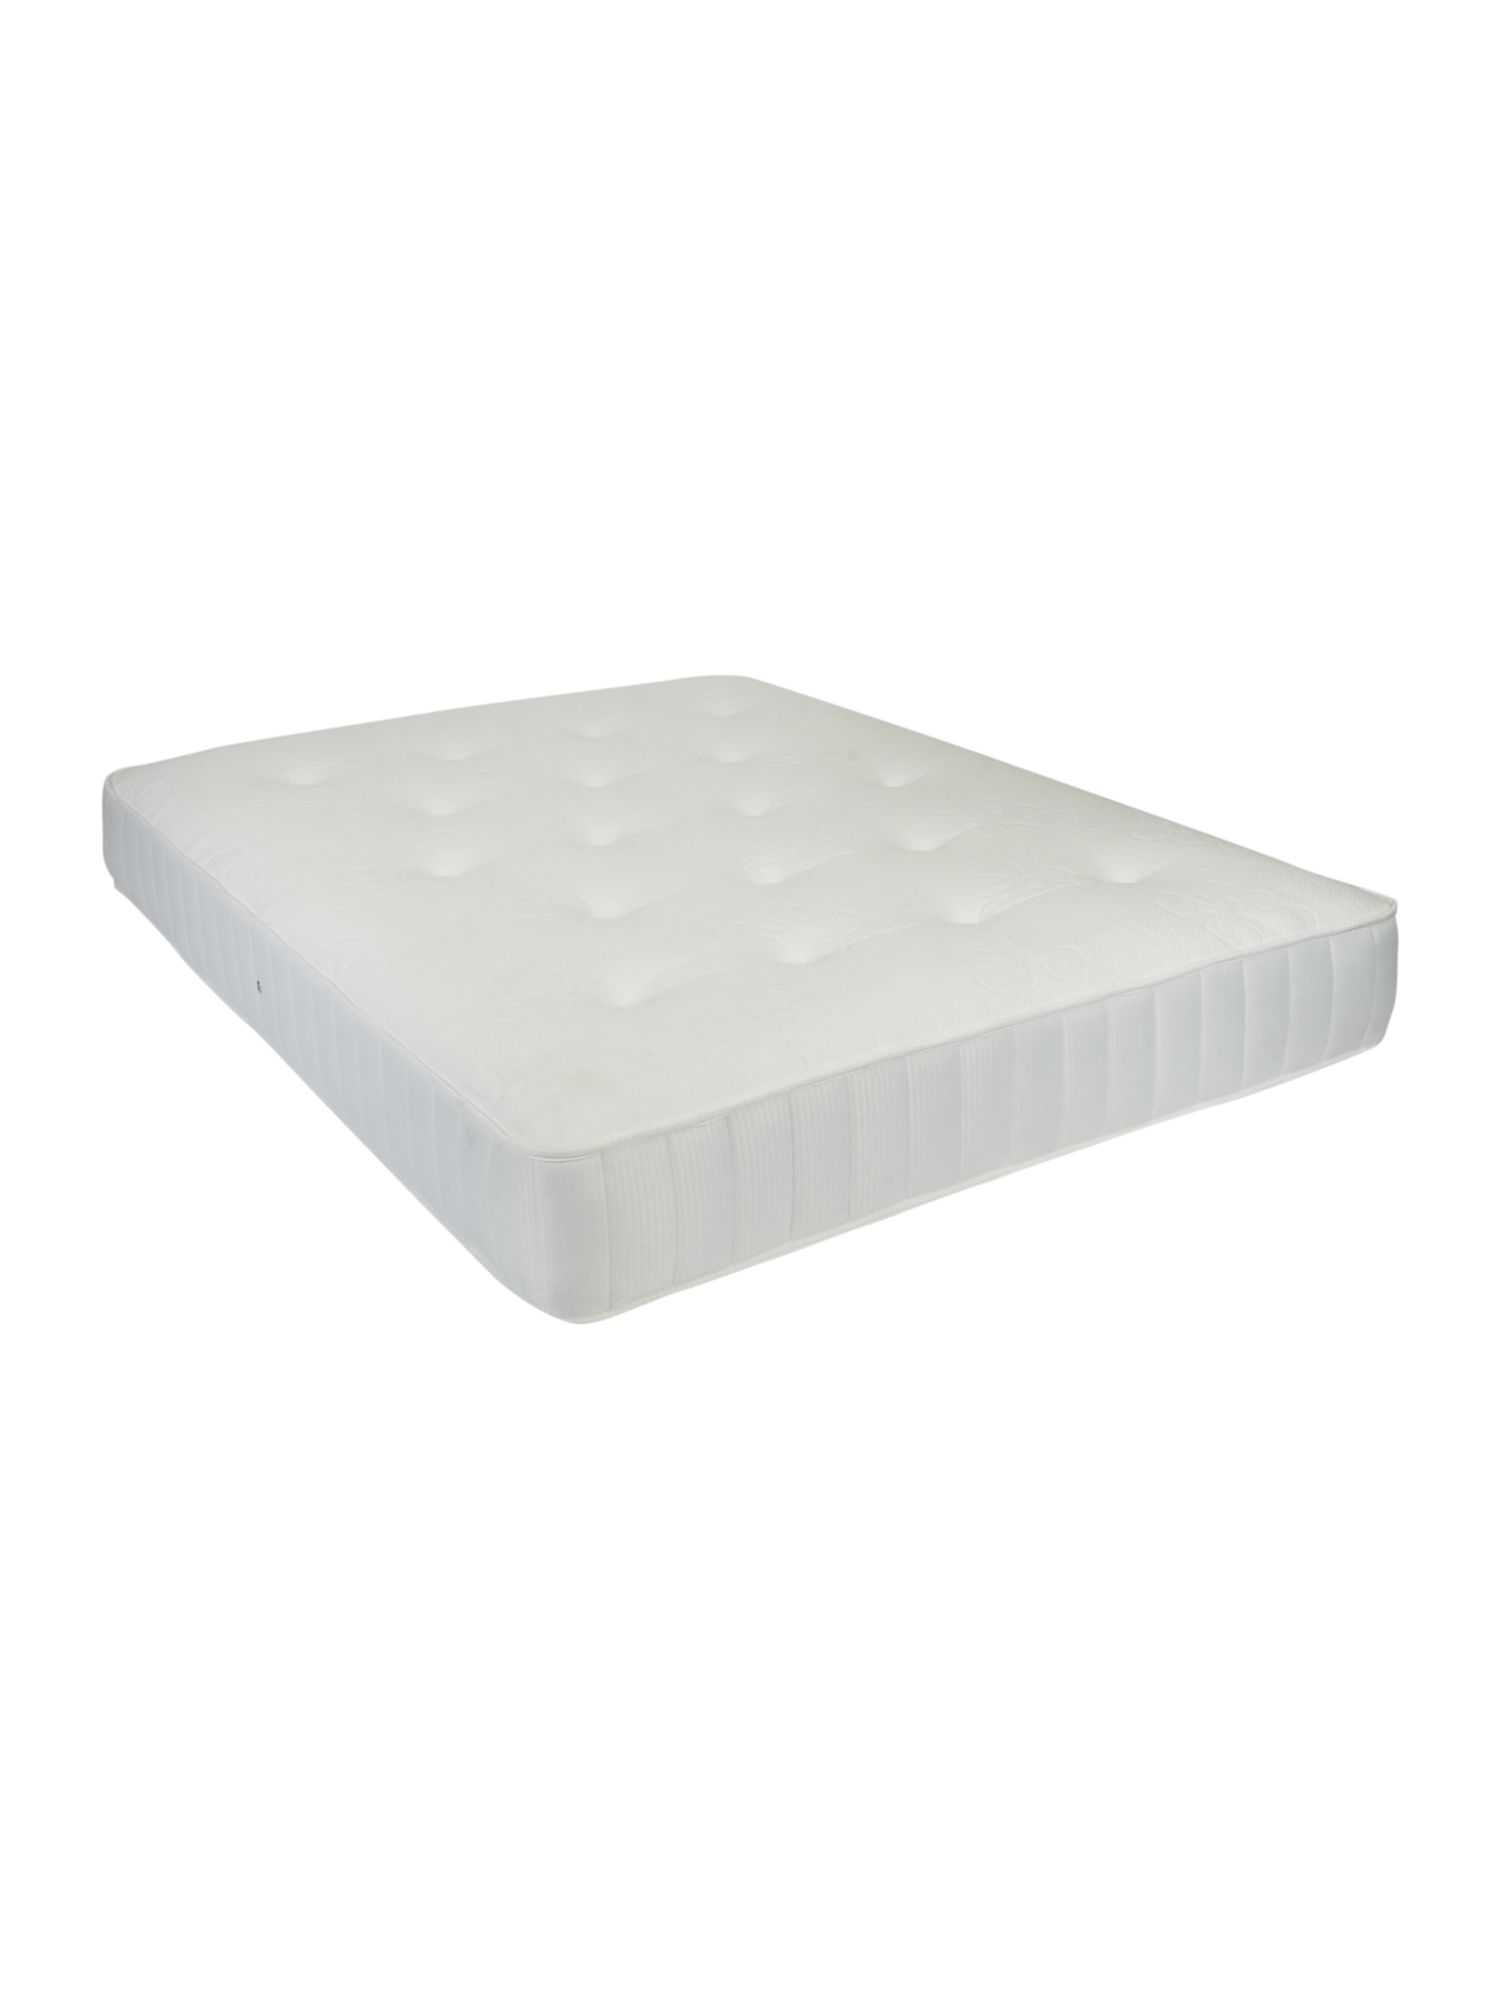 Pocket mattress range